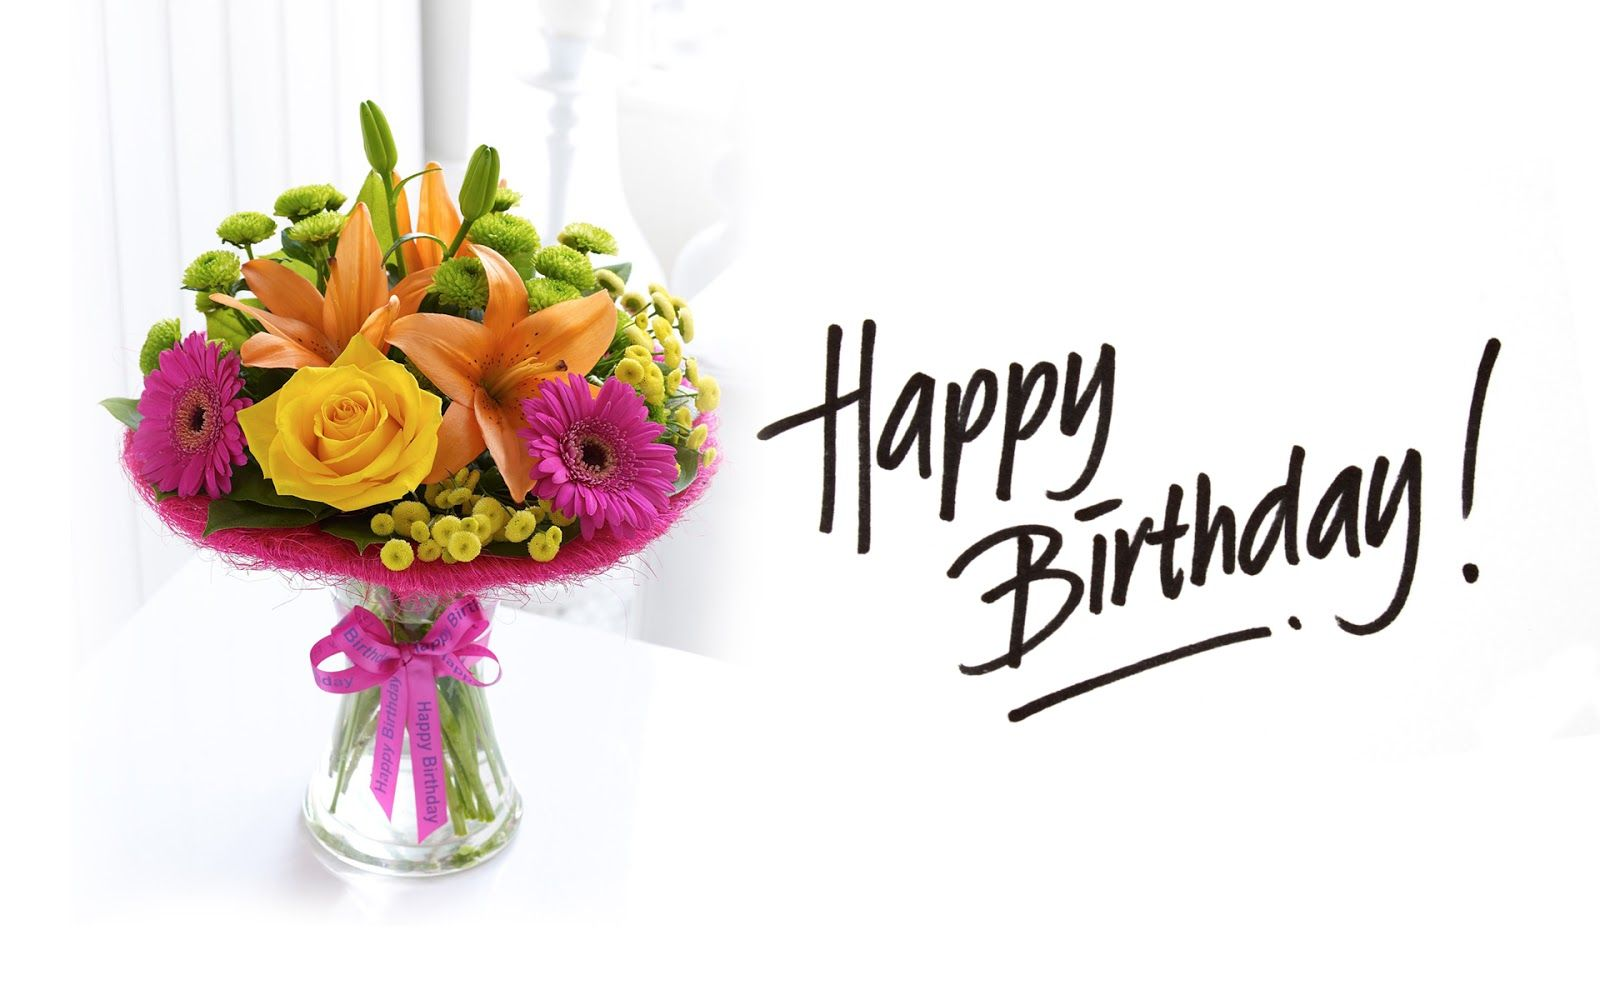 Happy 40th birthday to a beautiful talented and so kind woman best happy birthday flowers images happy birthday flowers pics birthday wishes flower images happy birthday flowers for friend happy birthday flower izmirmasajfo Image collections